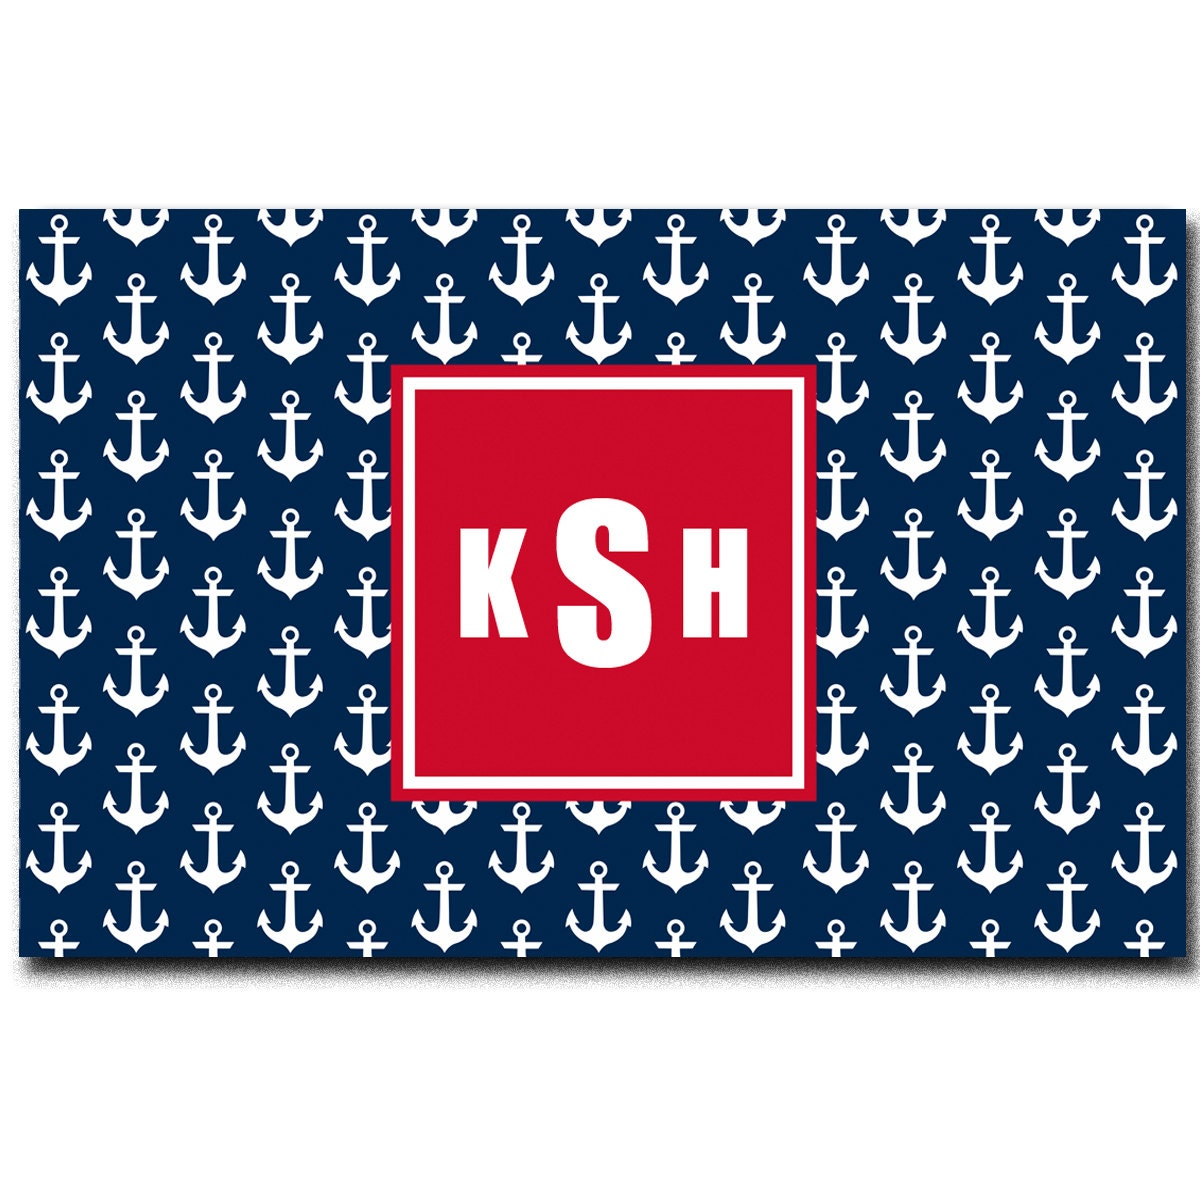 Plush Navy Rug: Personalized Navy And White Anchor Plush Fuzzy Area Rug Size